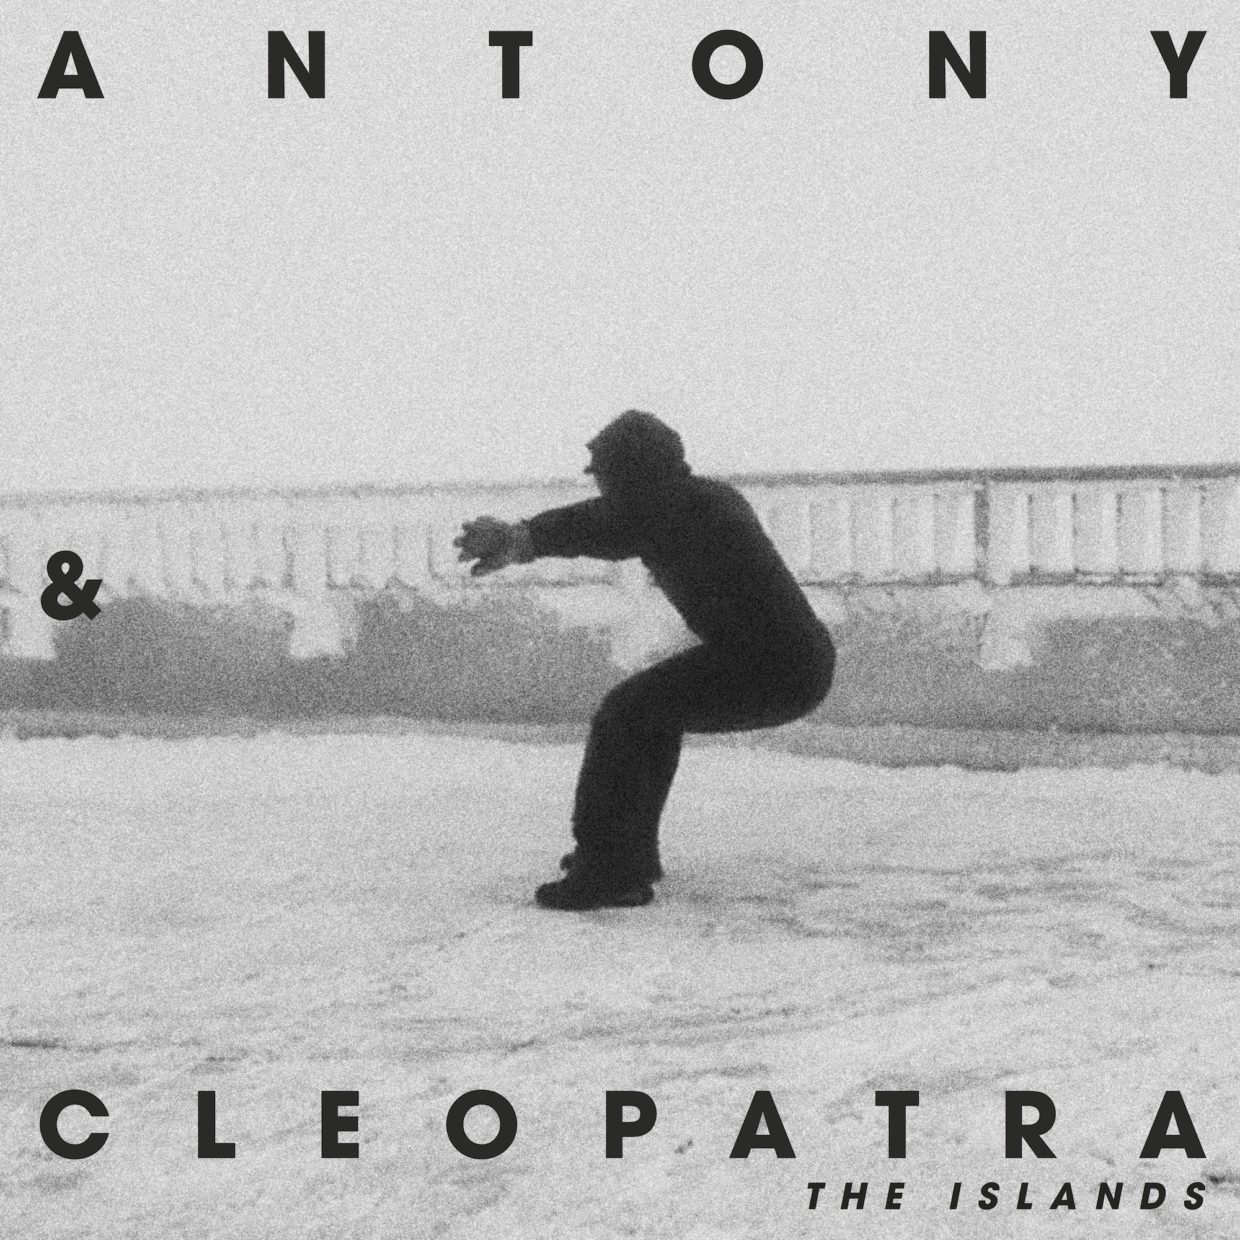 Antony & Cleopatra - The Islands